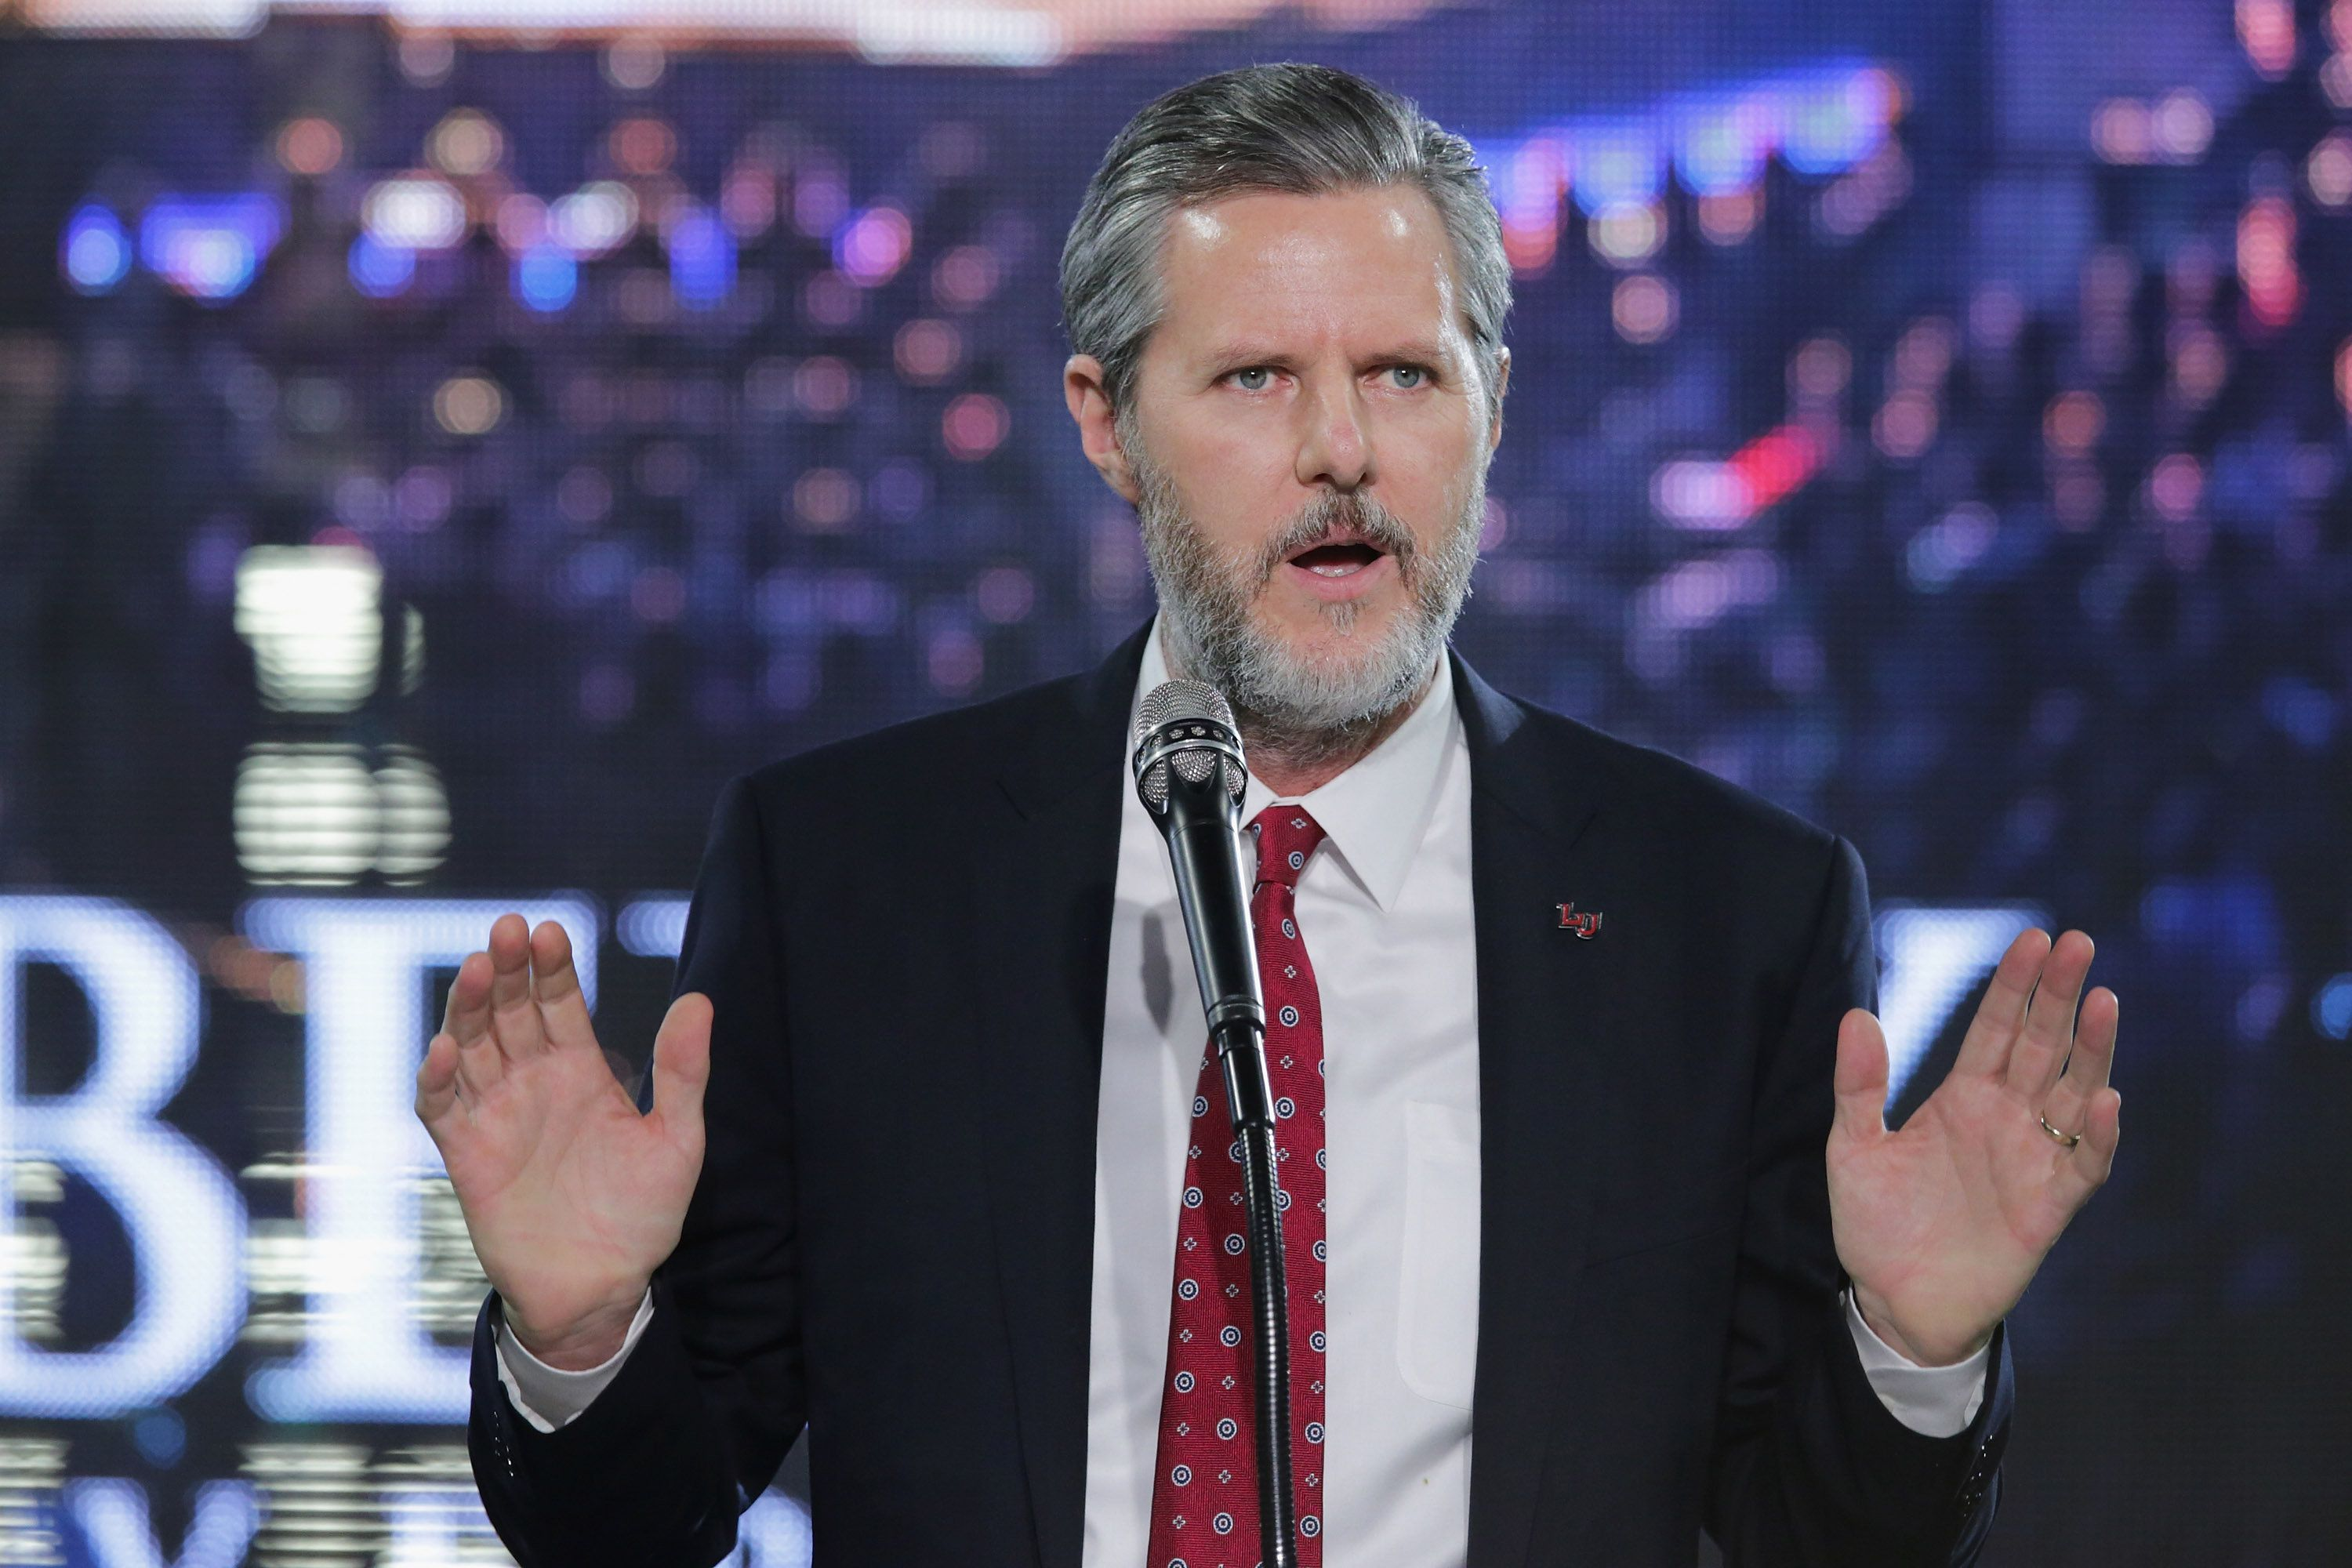 Jerry Falwell Jr. introduces Donald Trump at a rally in January at Liberty University in Lynchburg, Virginia.